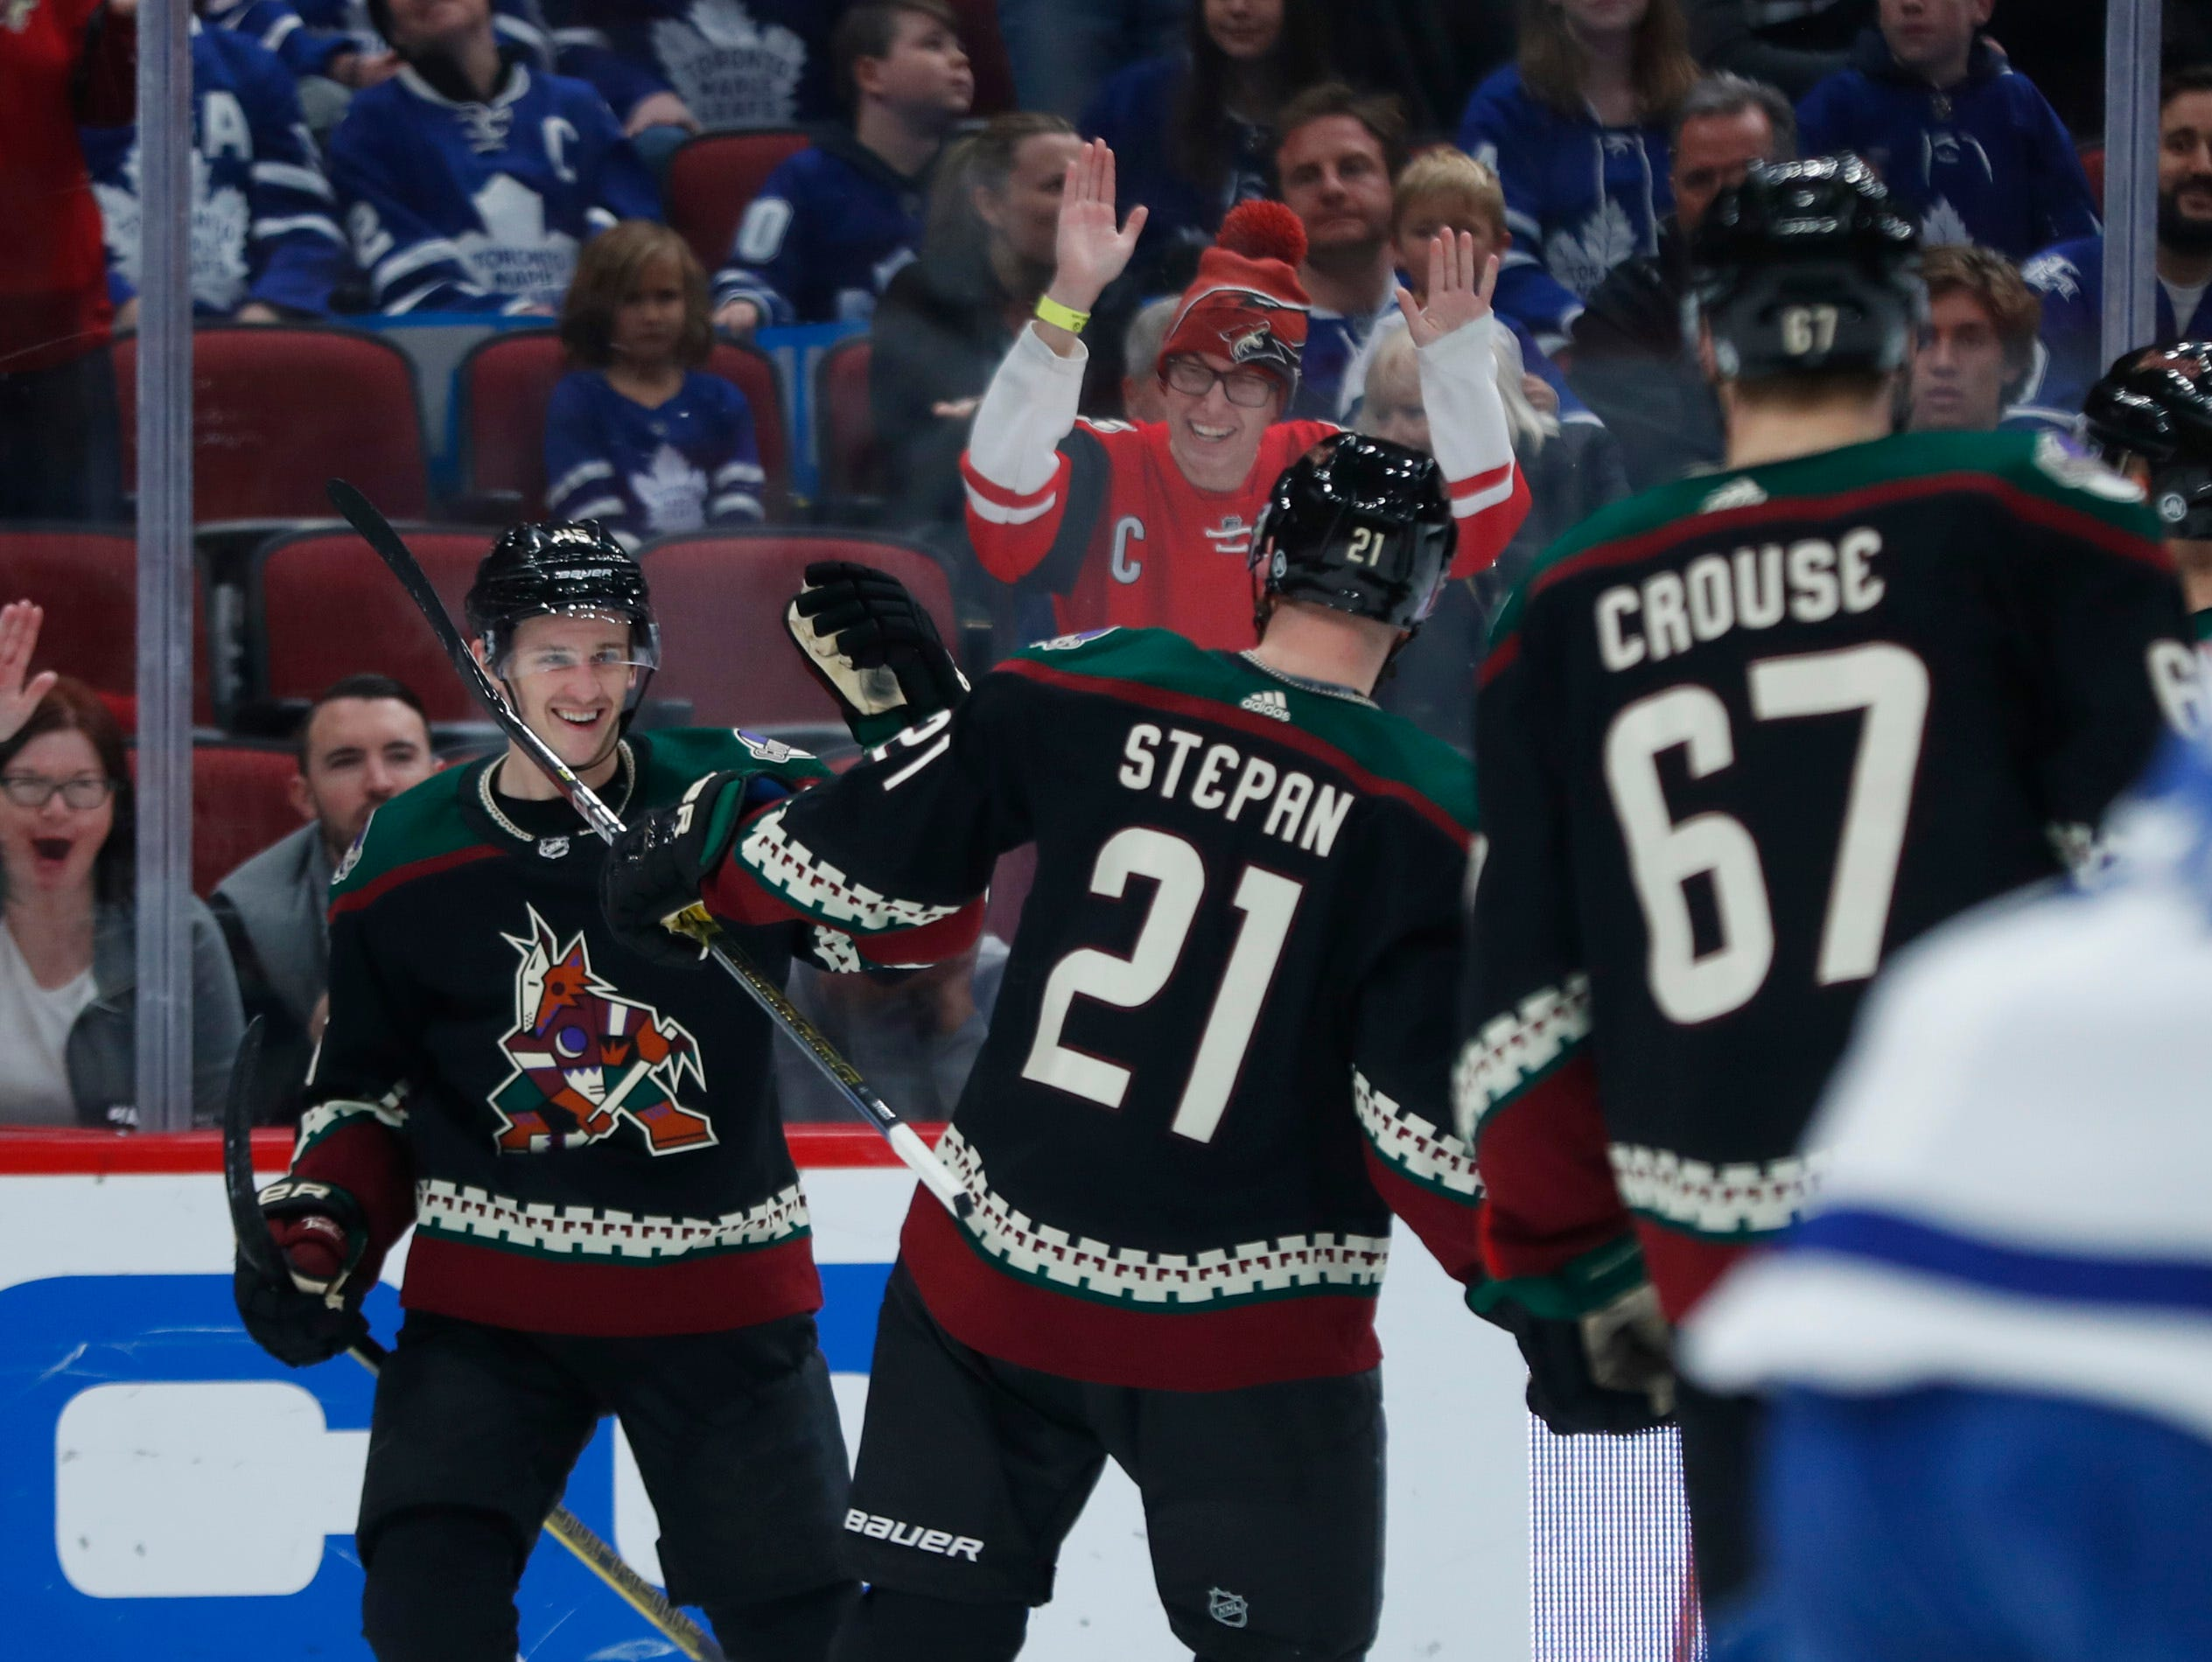 Coyotes' Josh Archibald (45) celebrates his goal with teammates Derek Stepan (21) and Lawson Crouse (67) during the second period at Gila River Arena in Glendale, Ariz. on February 16, 2019.